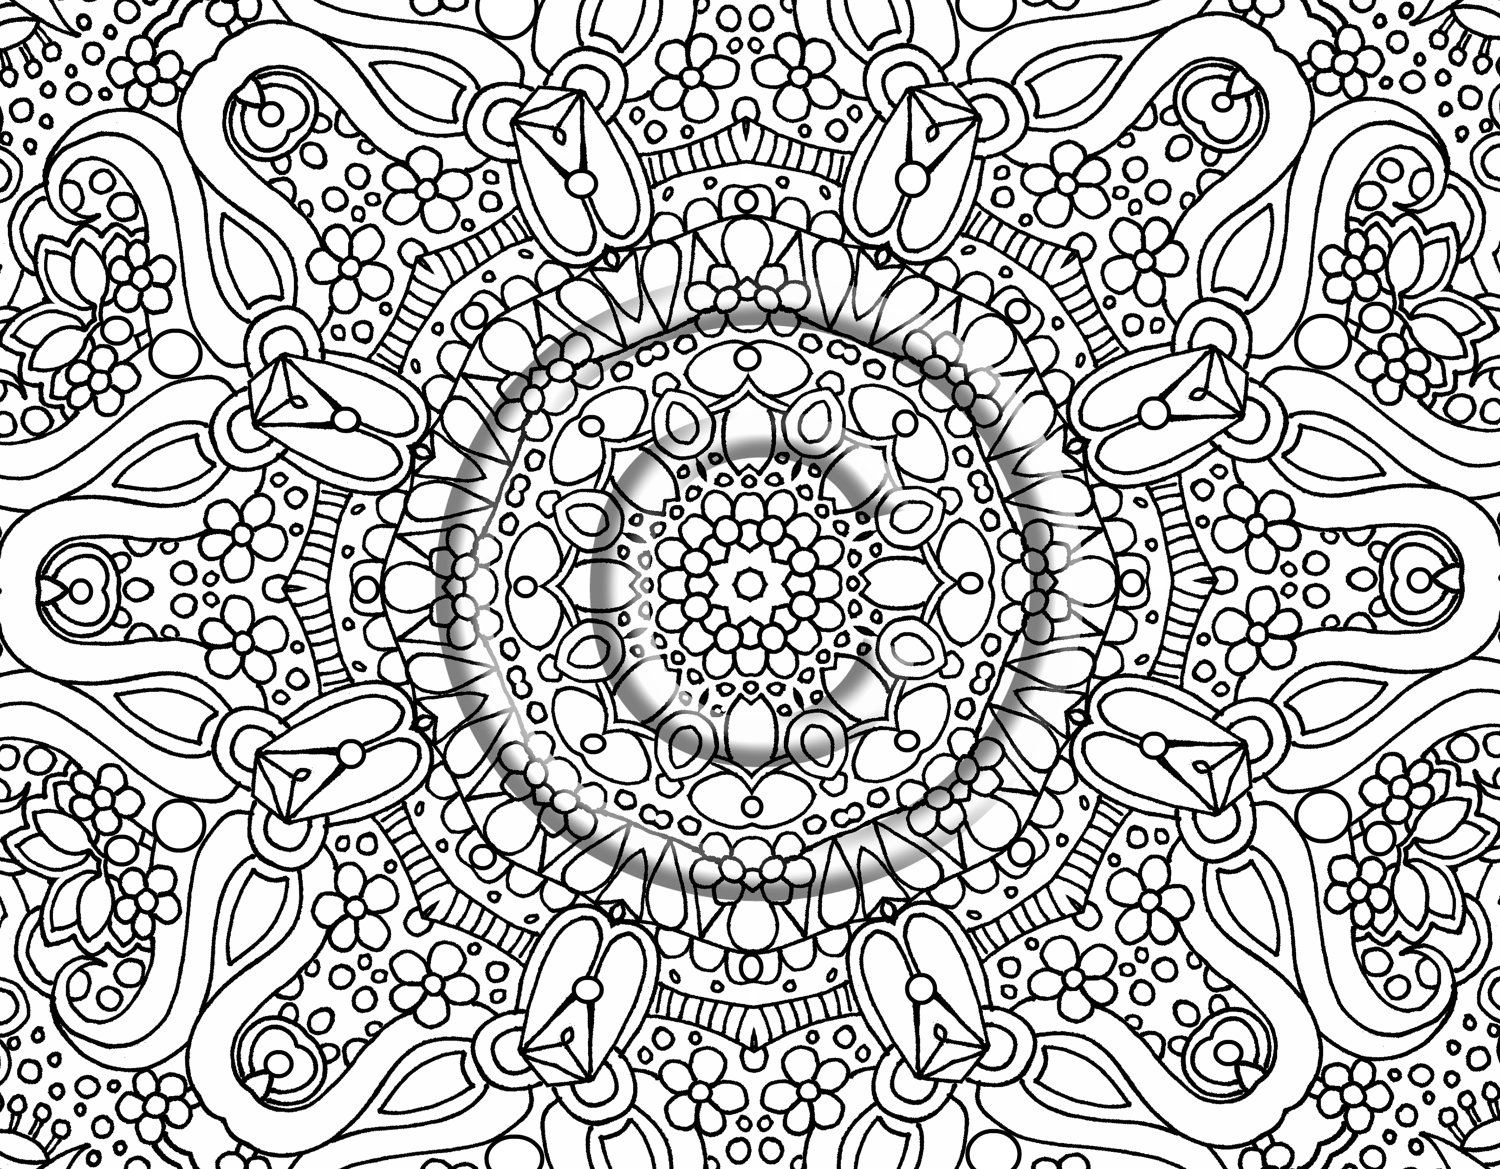 Coloring pages for adults abstract - Hard Coloring Pages